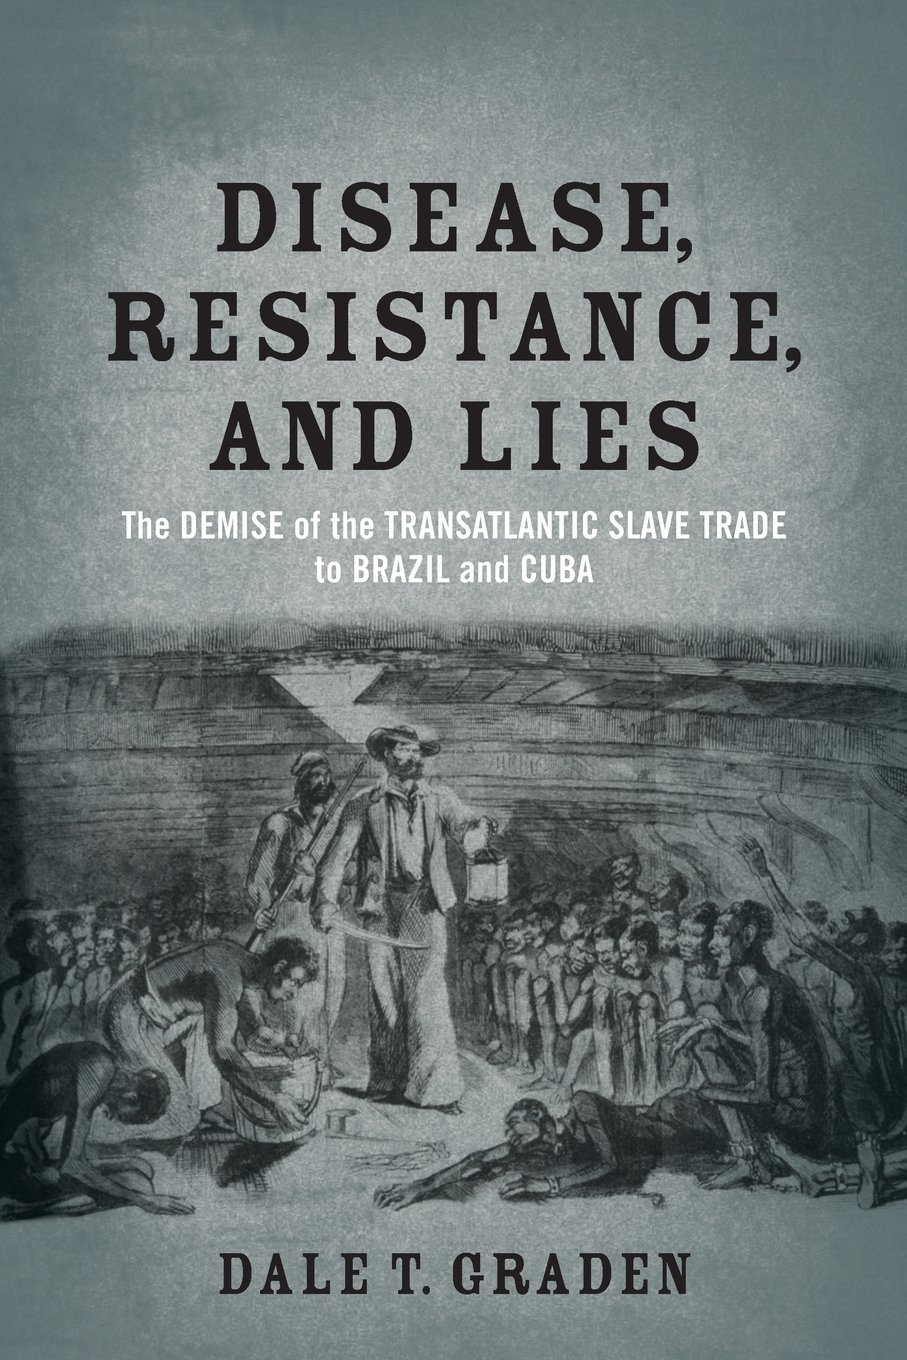 Disease, Resistance, and Lies: The Demise of the Transatlantic Slave Trade to Brazil and Cuba